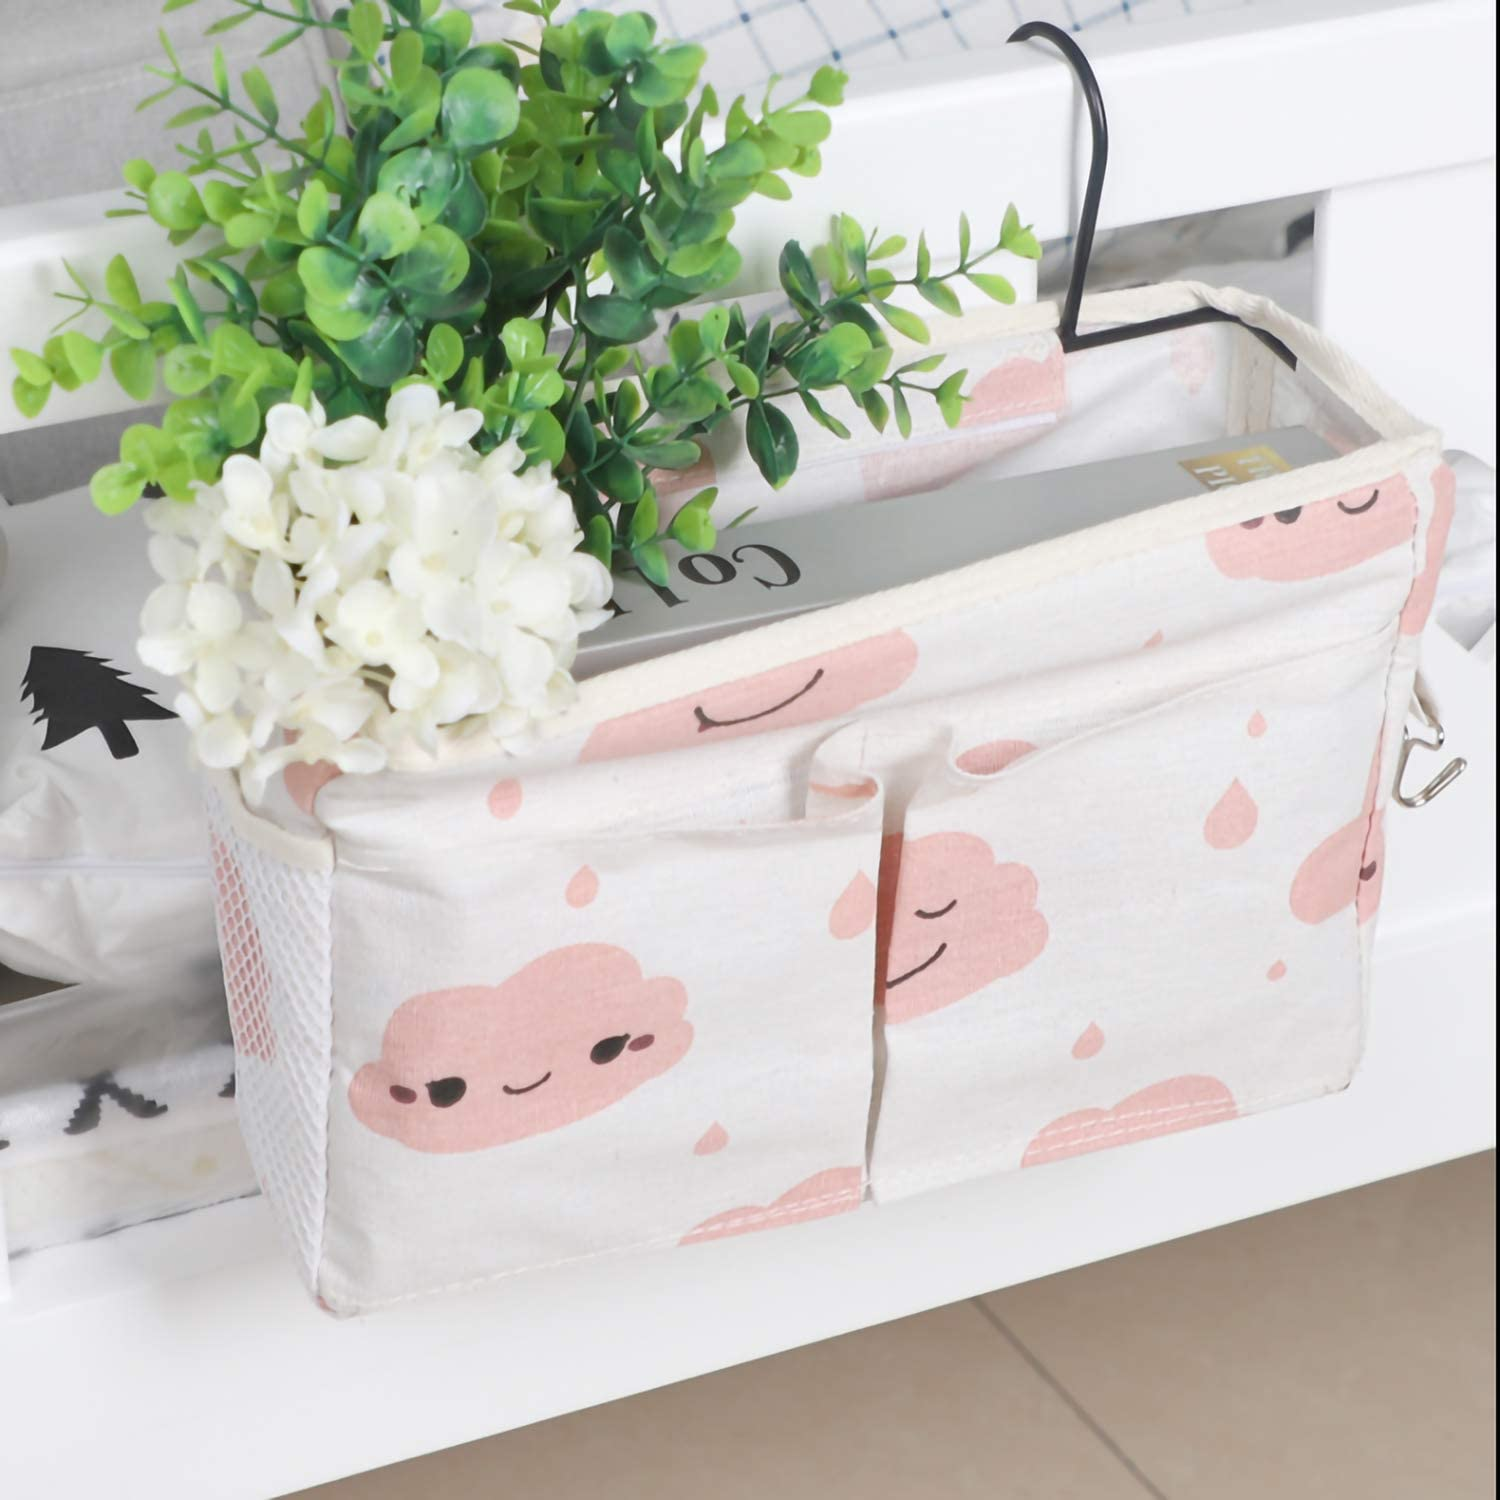 FOOF 2 Pack Bed Side Hanging Organizer Caddy Pocket with Metal Hooks for Apartments Dorm Hanging Pouch Storage Pink